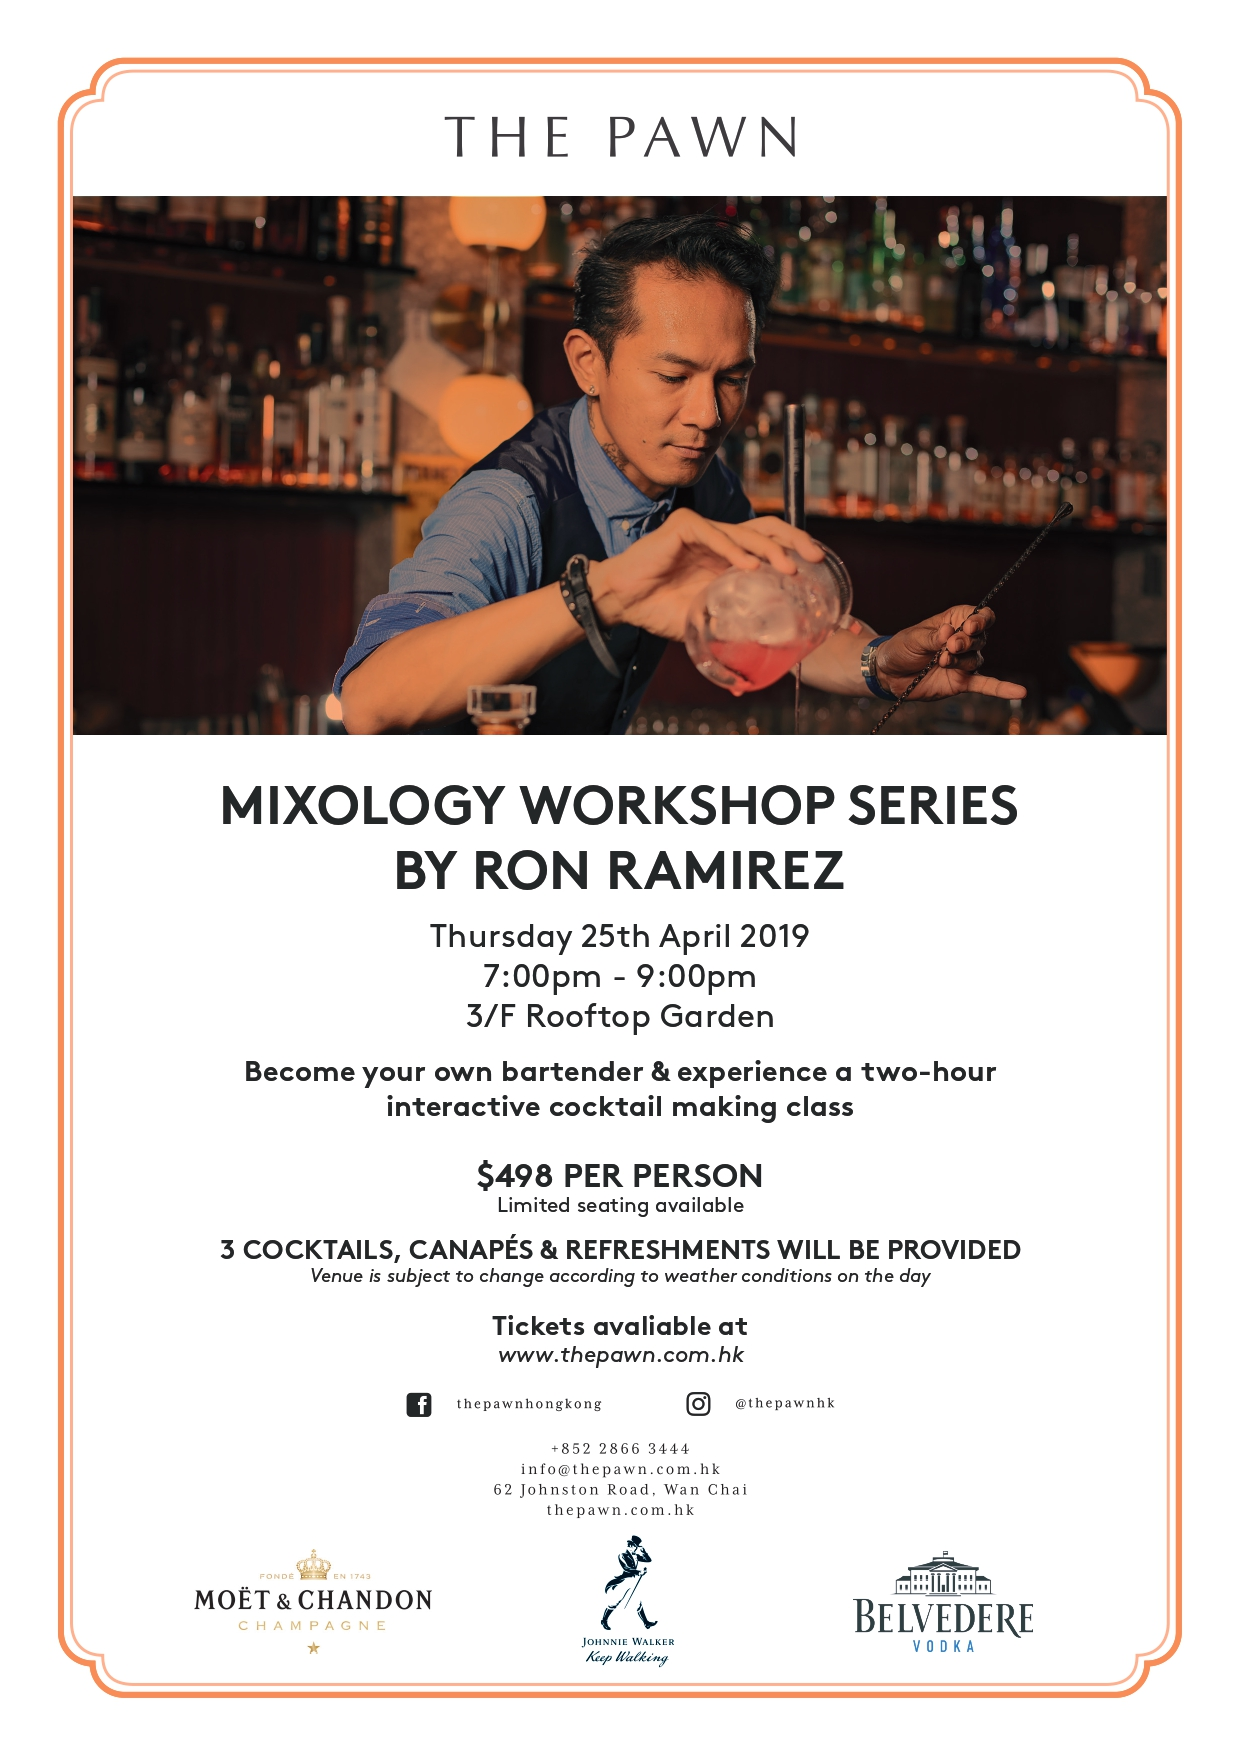 The Pawn Mixology Workshop Series